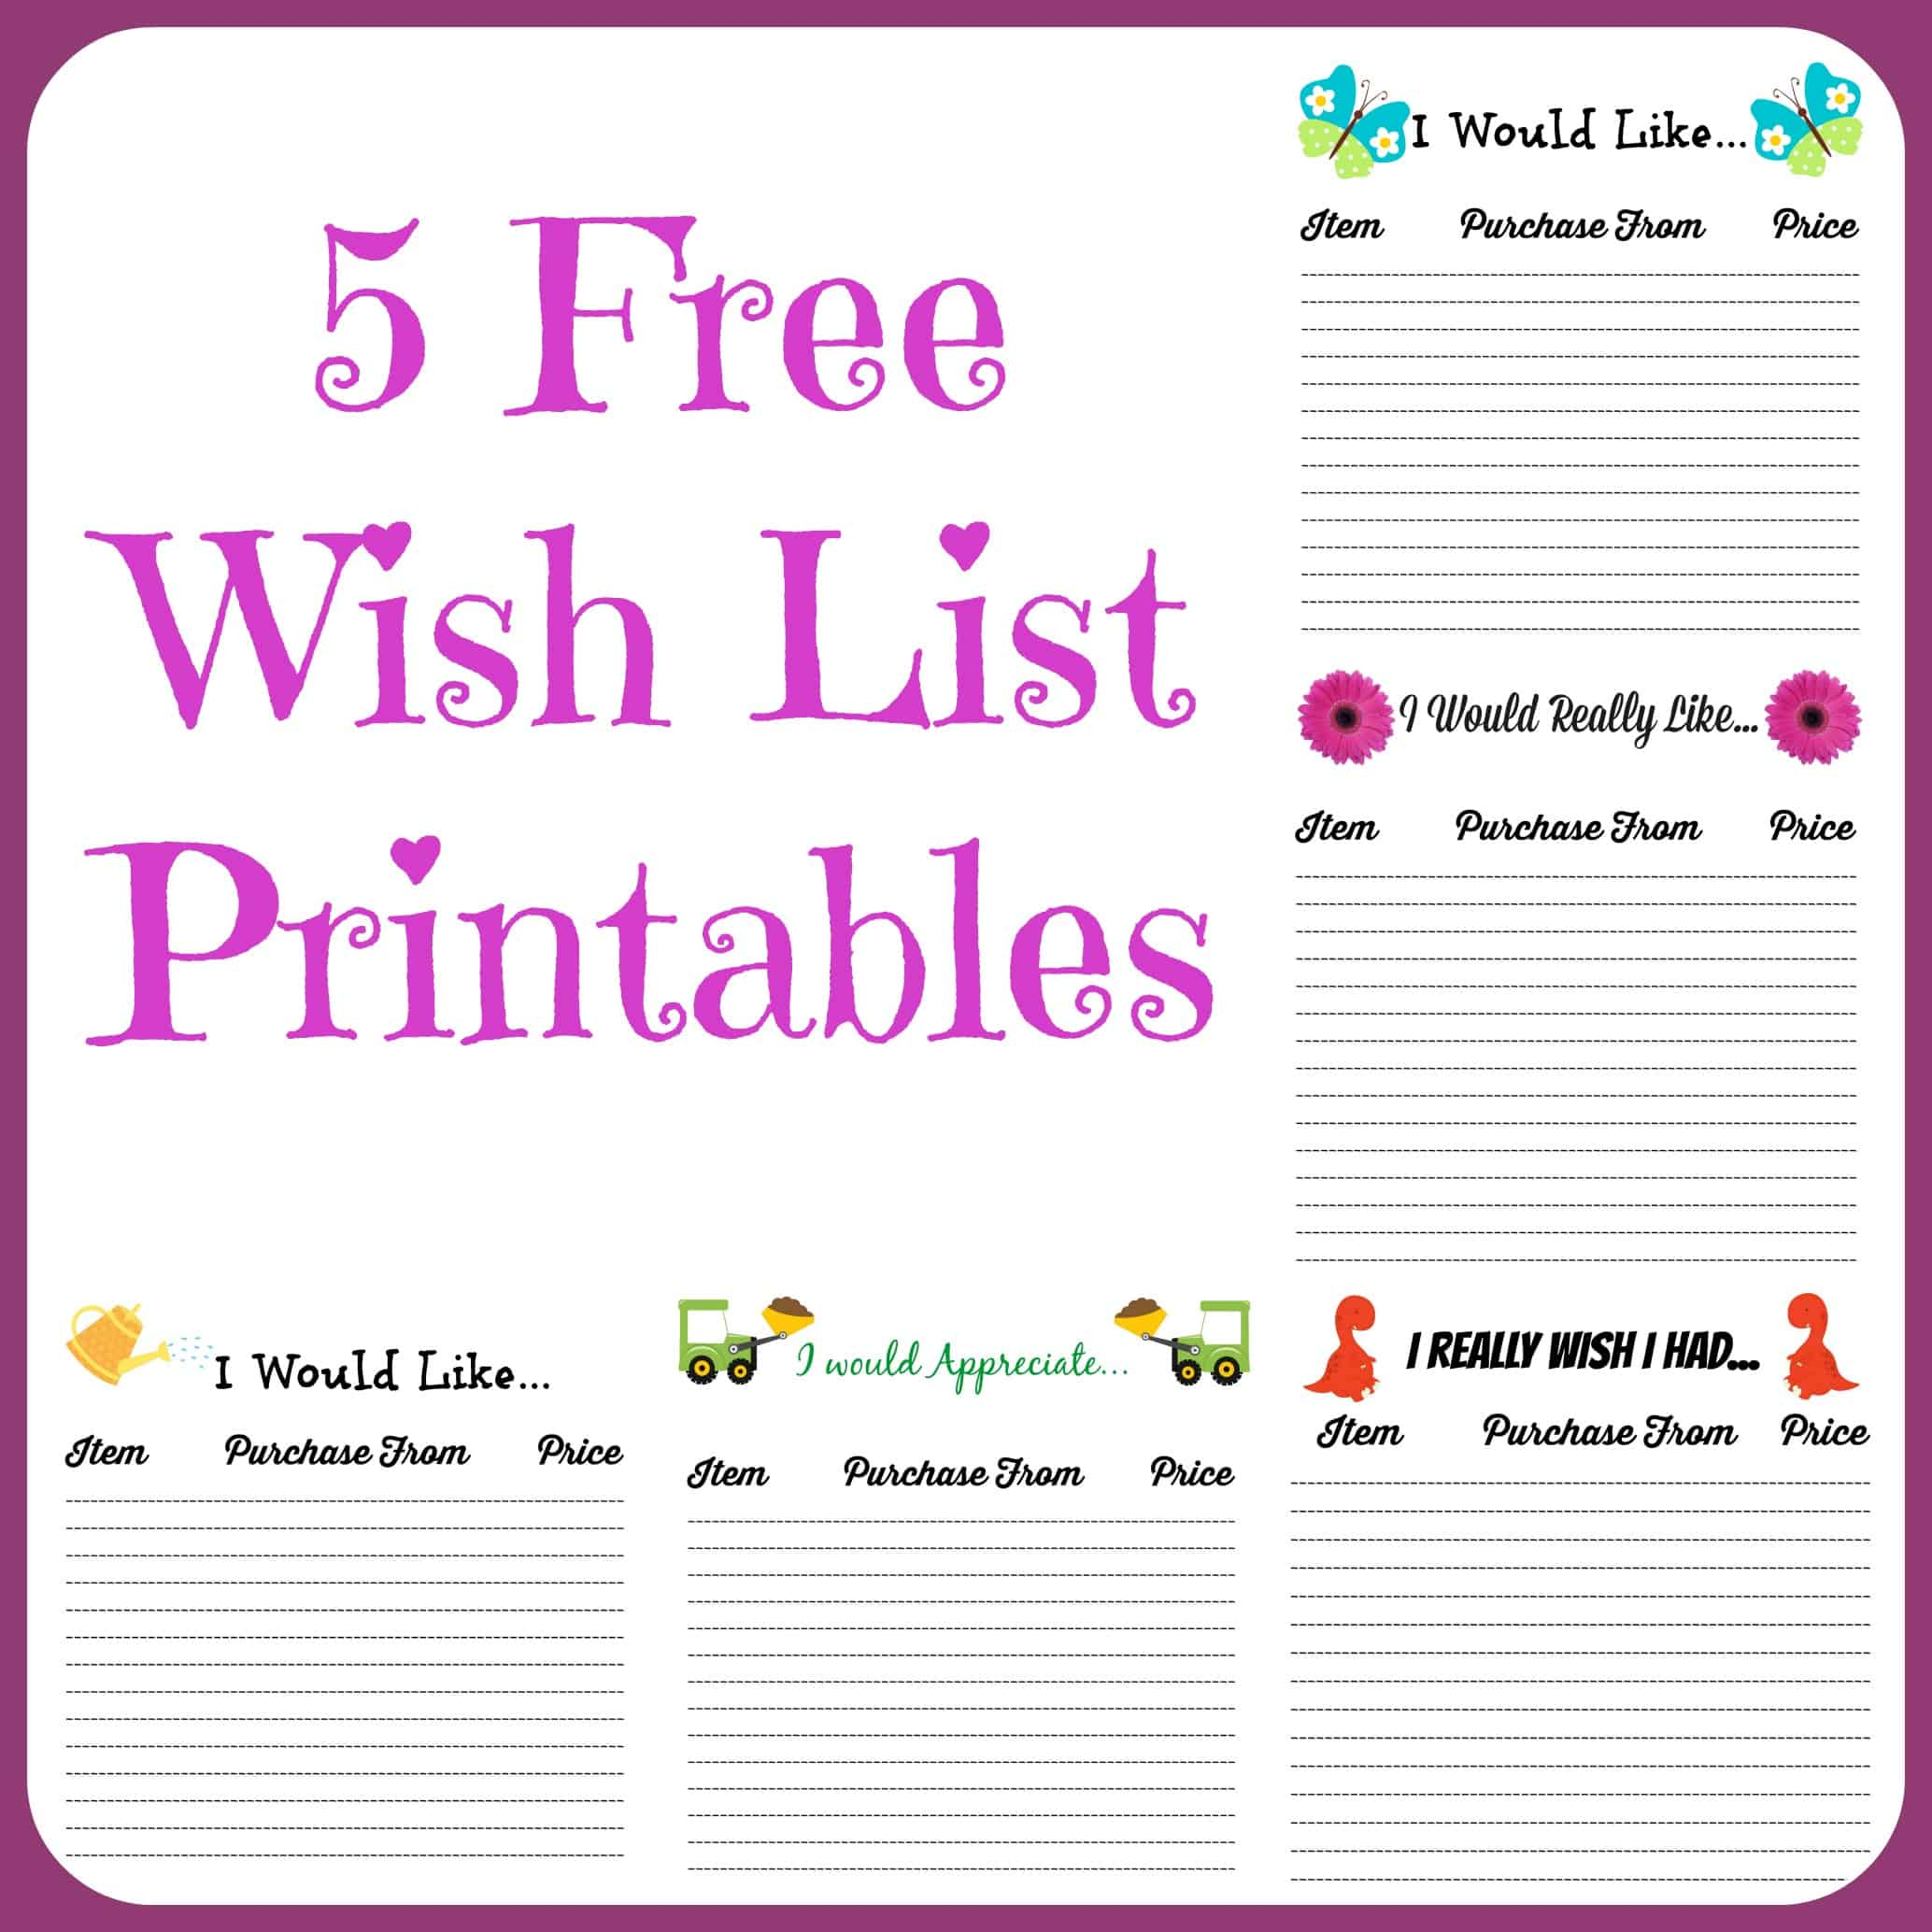 Wish List Template Christmas List Printable Chelsea Girls – Free Printable Christmas Wish List Template